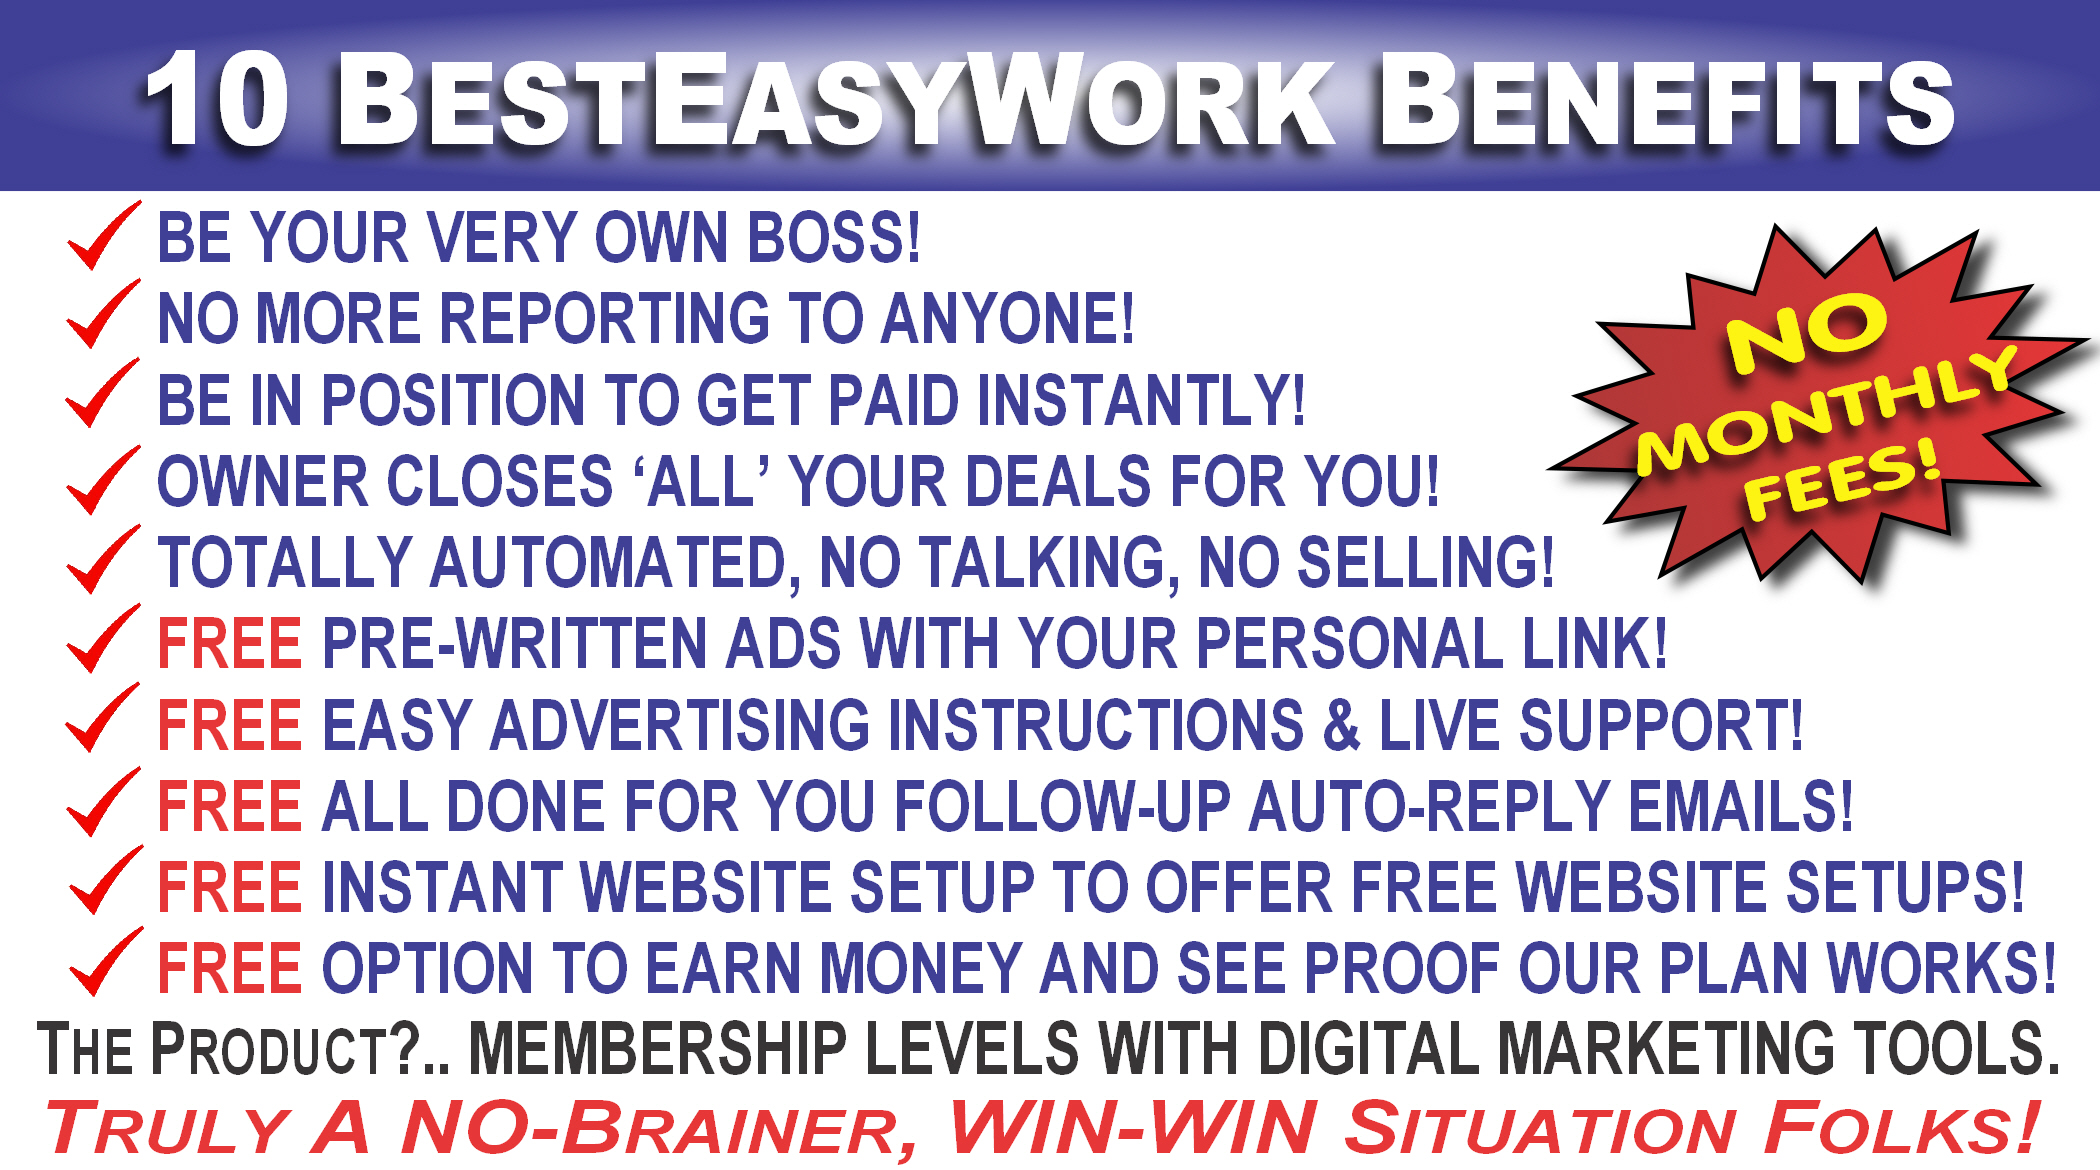 https://www.besteasywork.com/BENEFITS.JPG